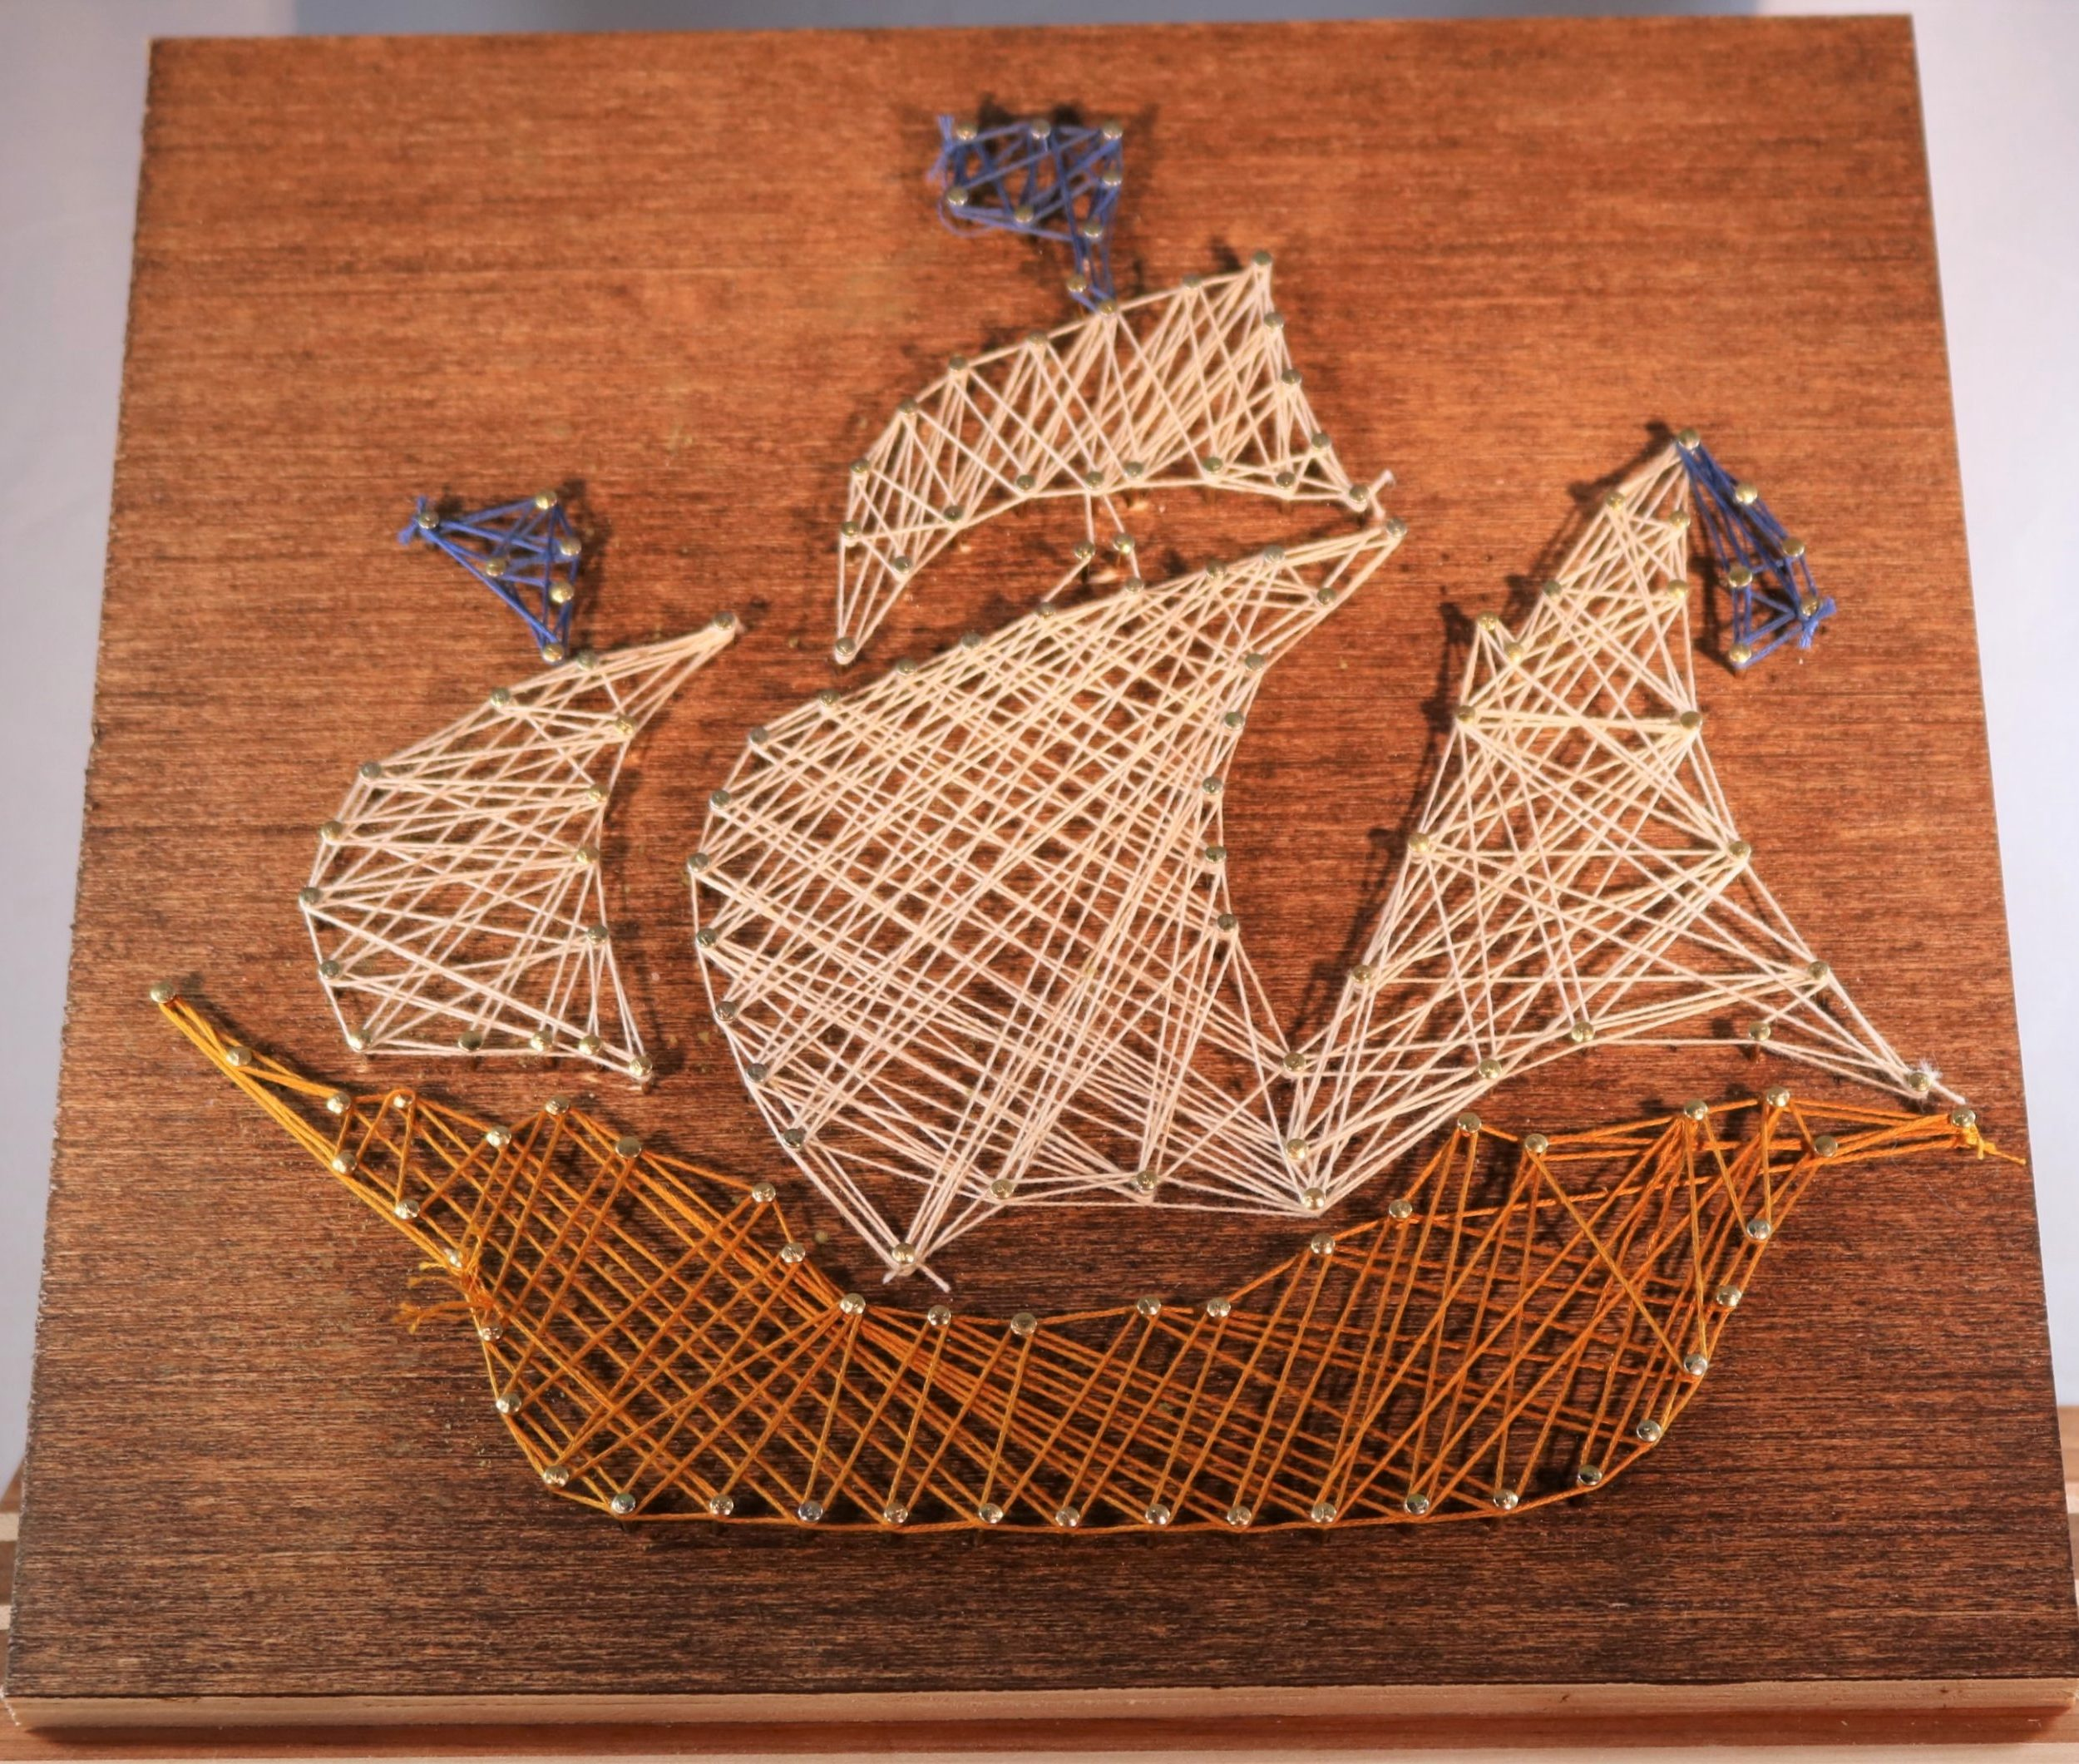 Masted Ship String Art Kit